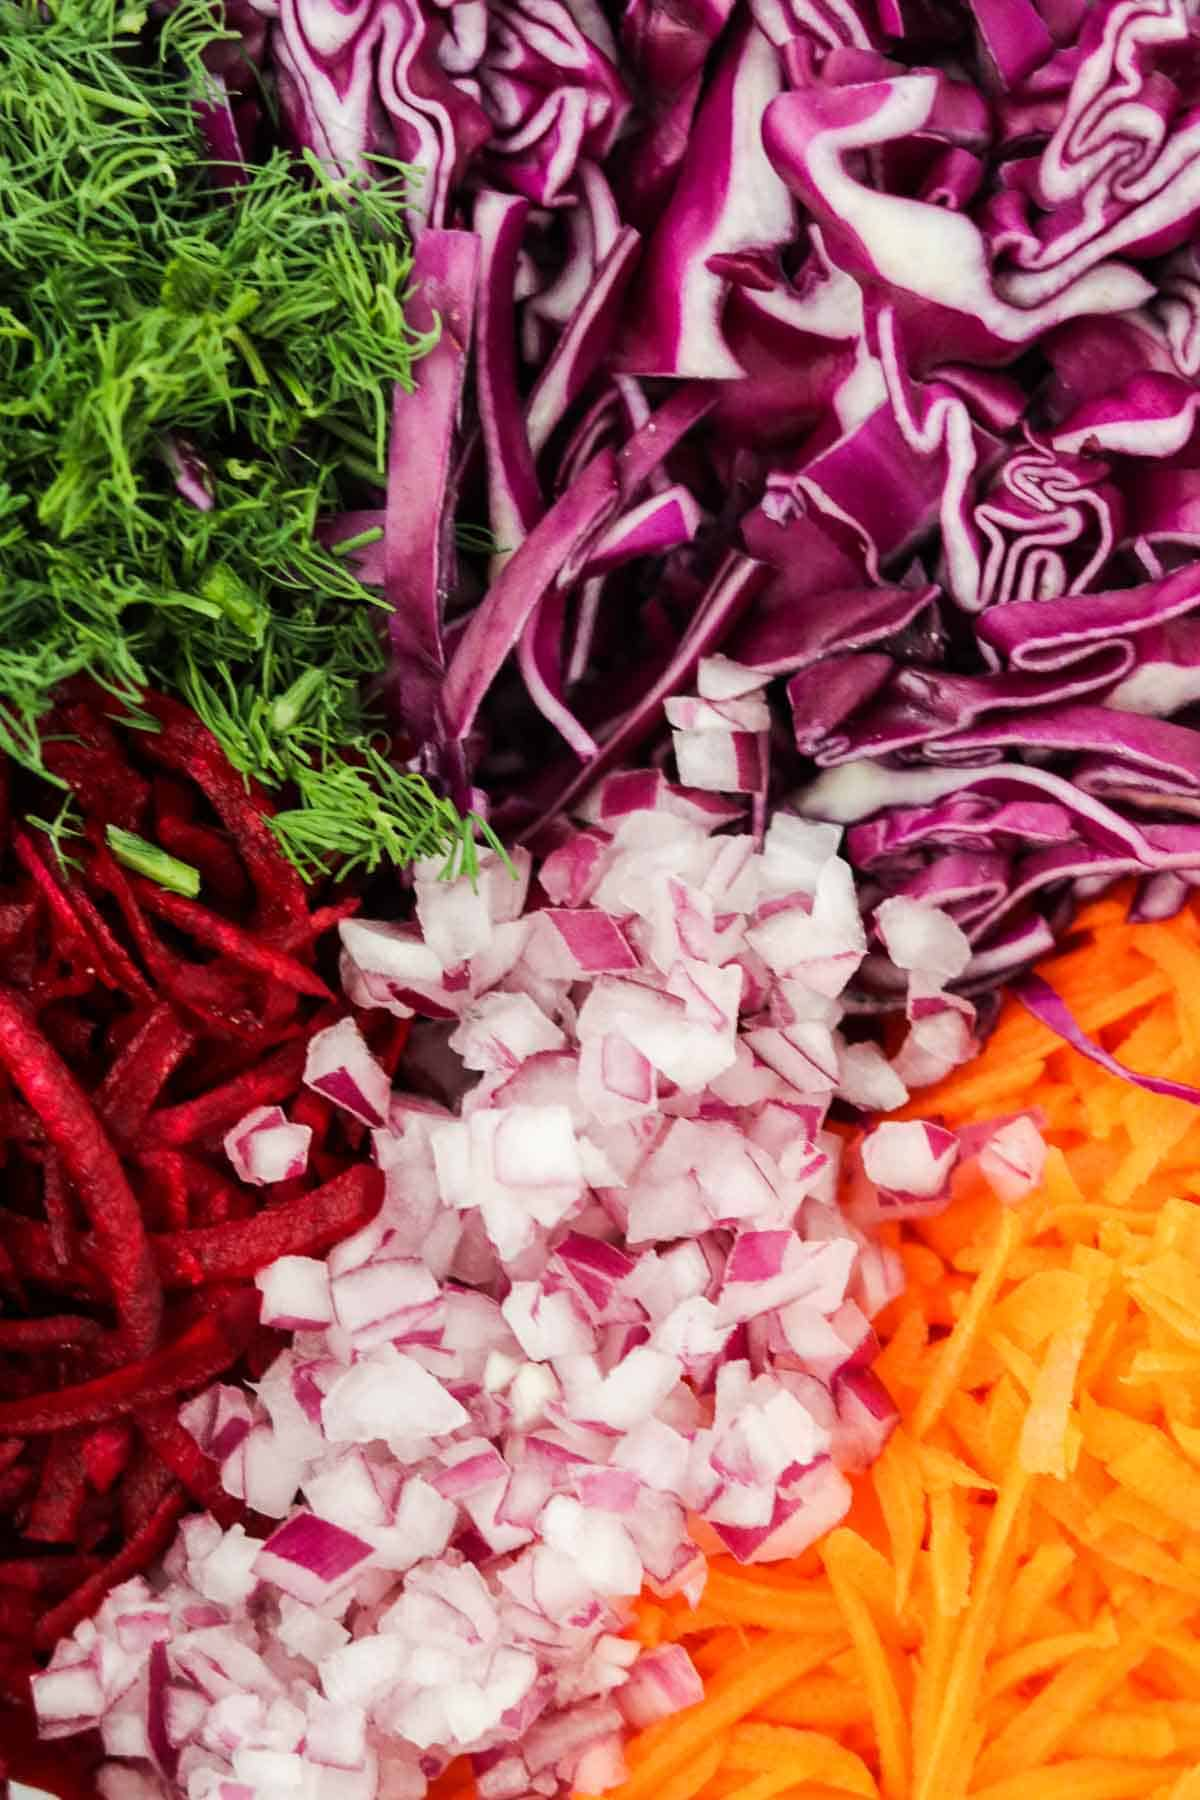 Close up of chopped up red cabbage, red onion, carrots, beets and dill.